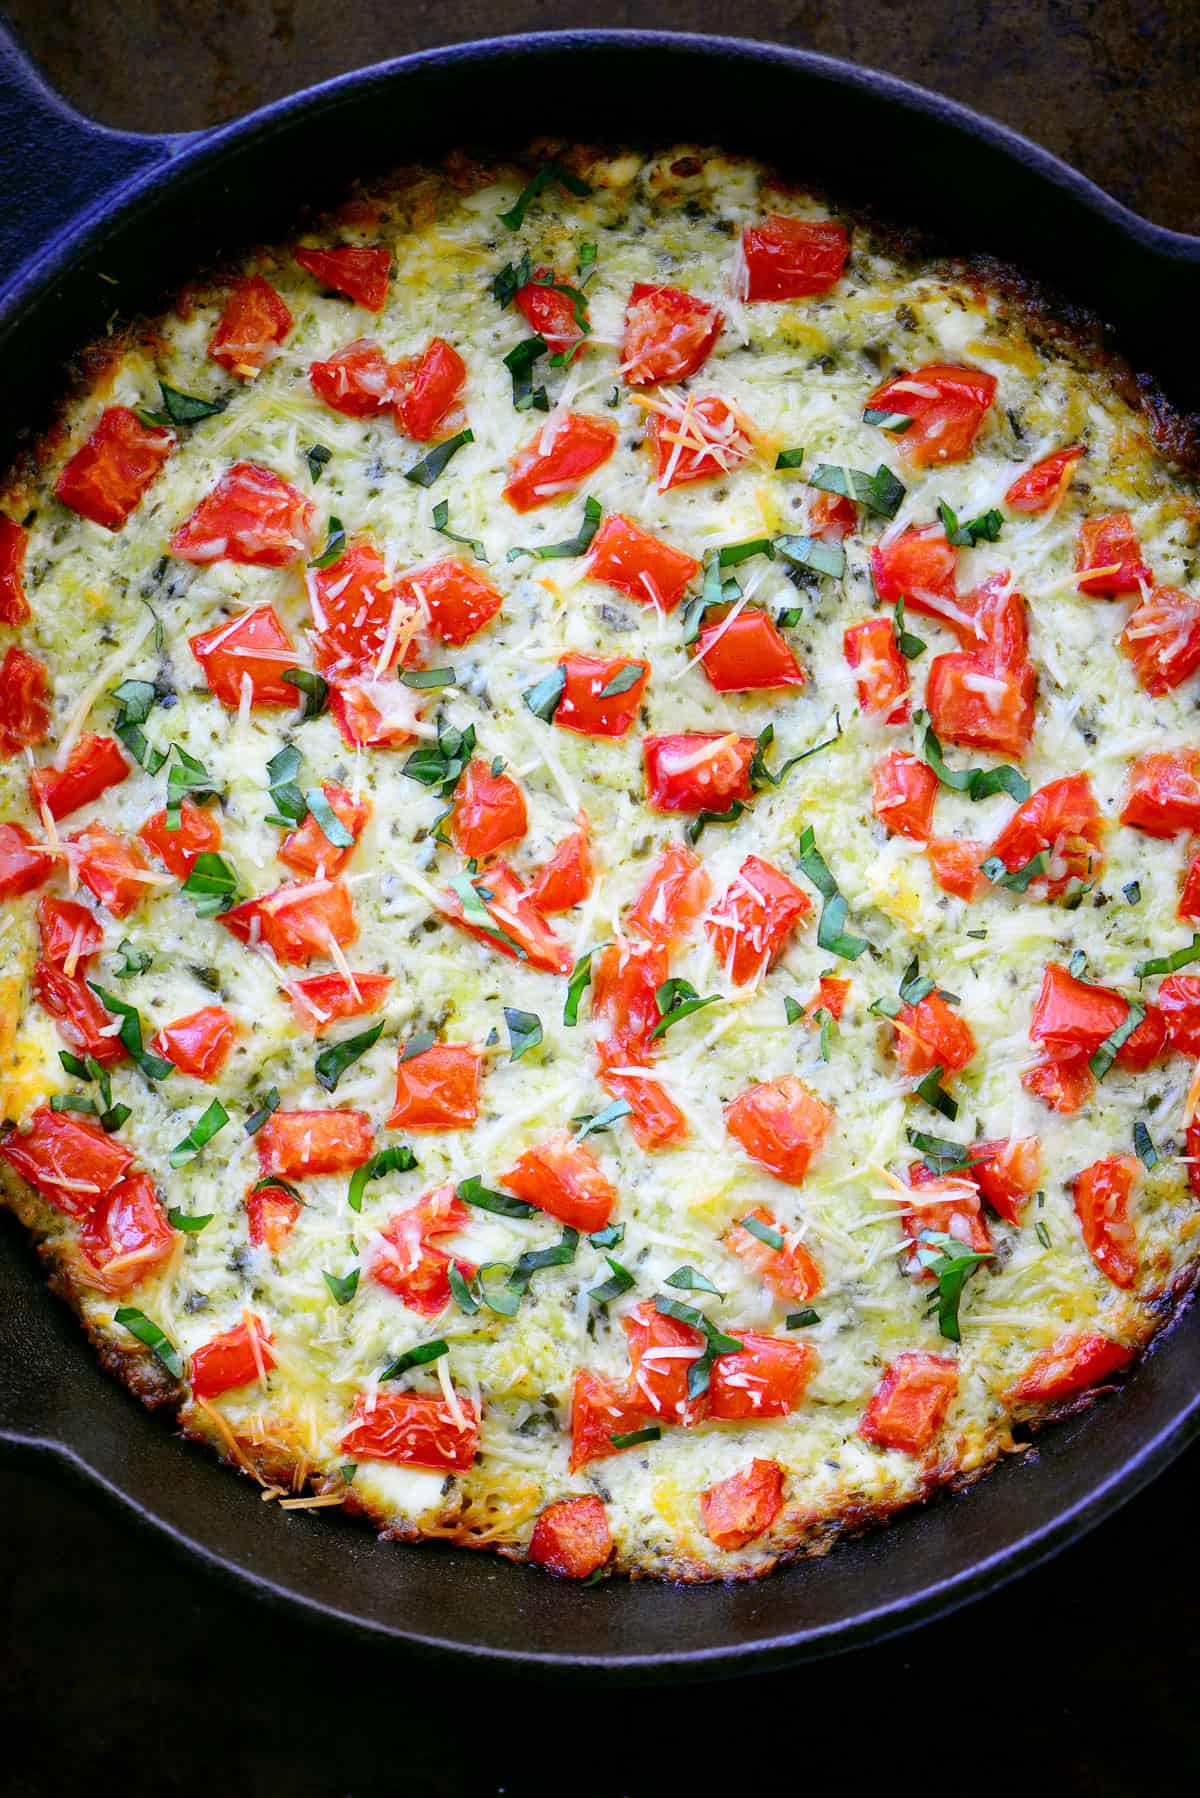 golden brown cheese with tomatoes in a skillet